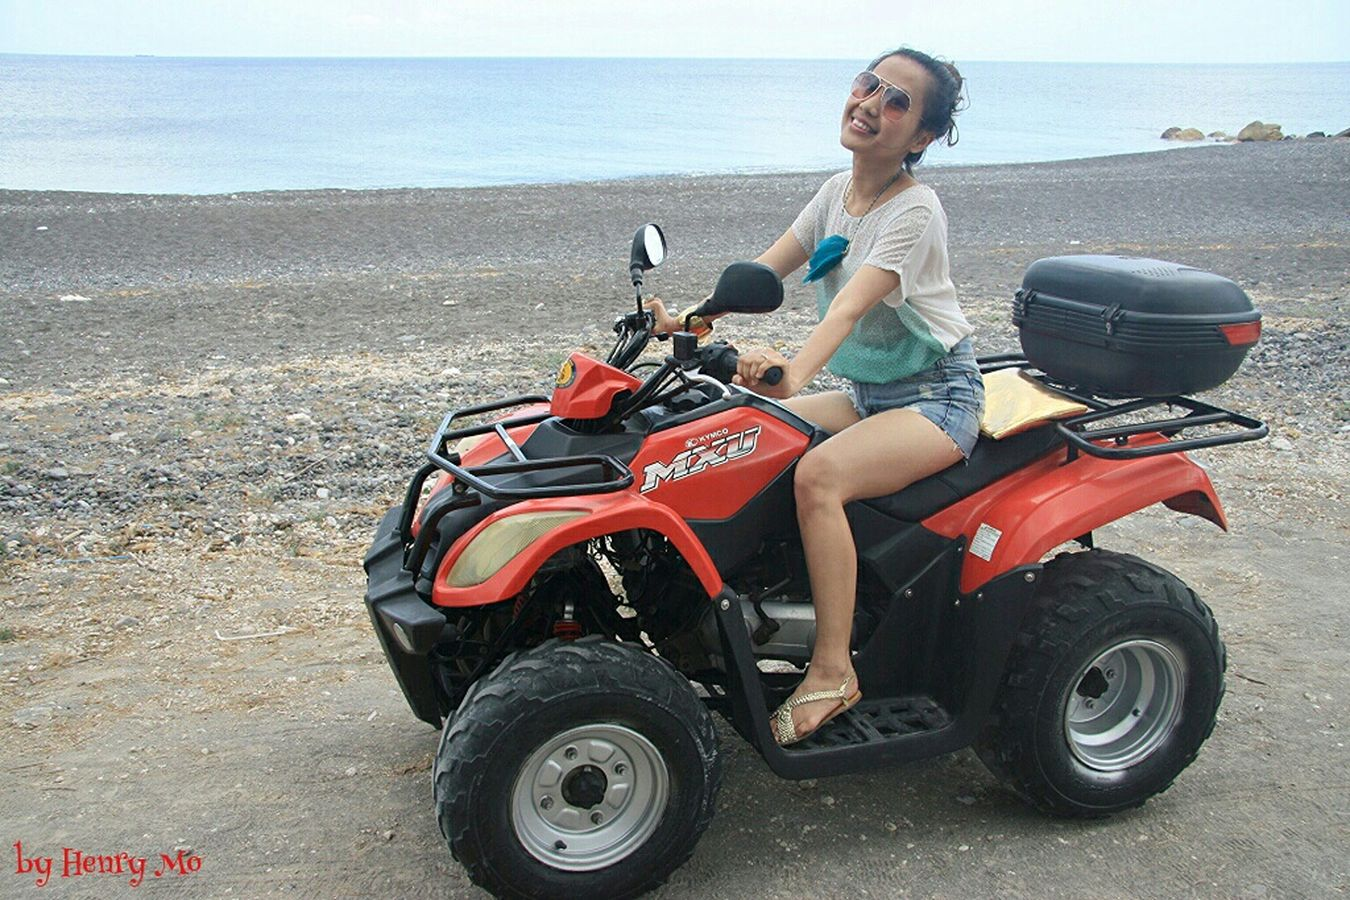 on the moto 2 Red beach Lovemotorcycles That's Me Beautiful Day Enjoying Life